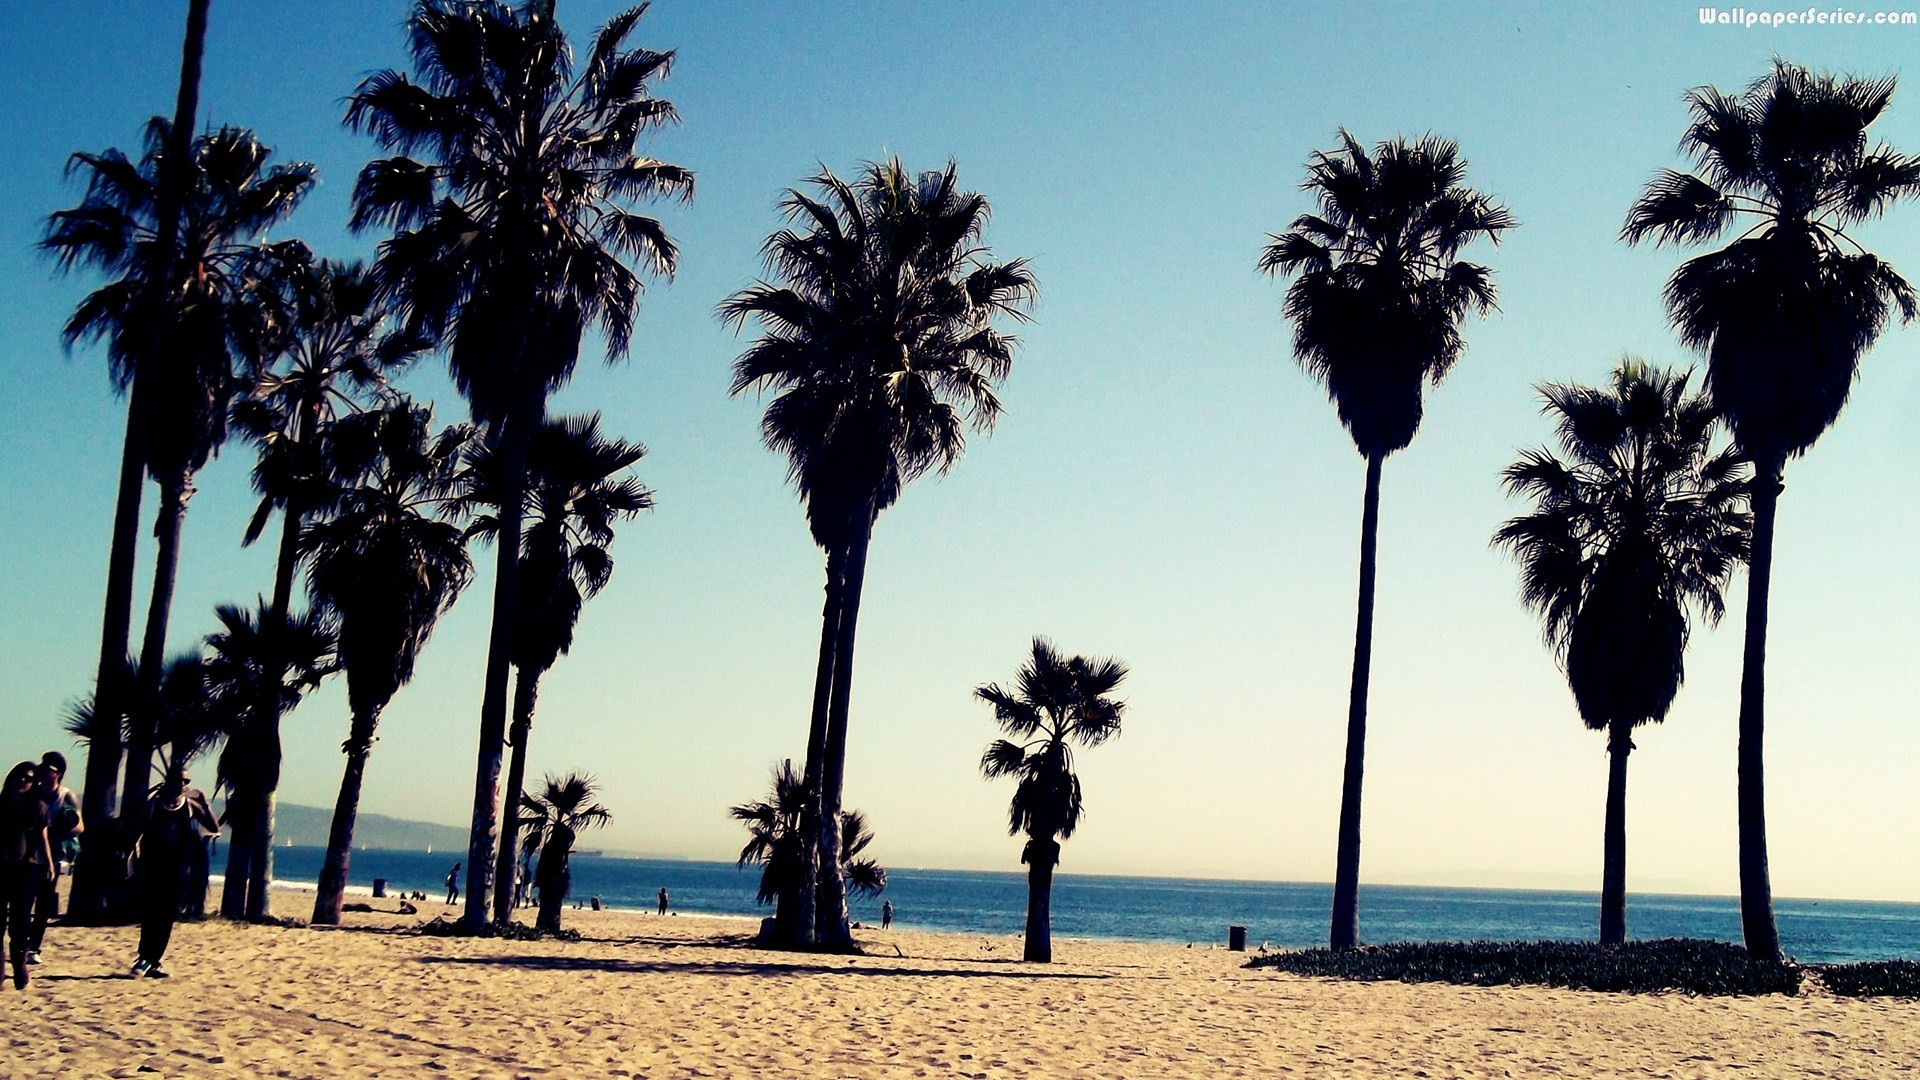 Venice Beach California Wallpaper 67 images 1920x1080